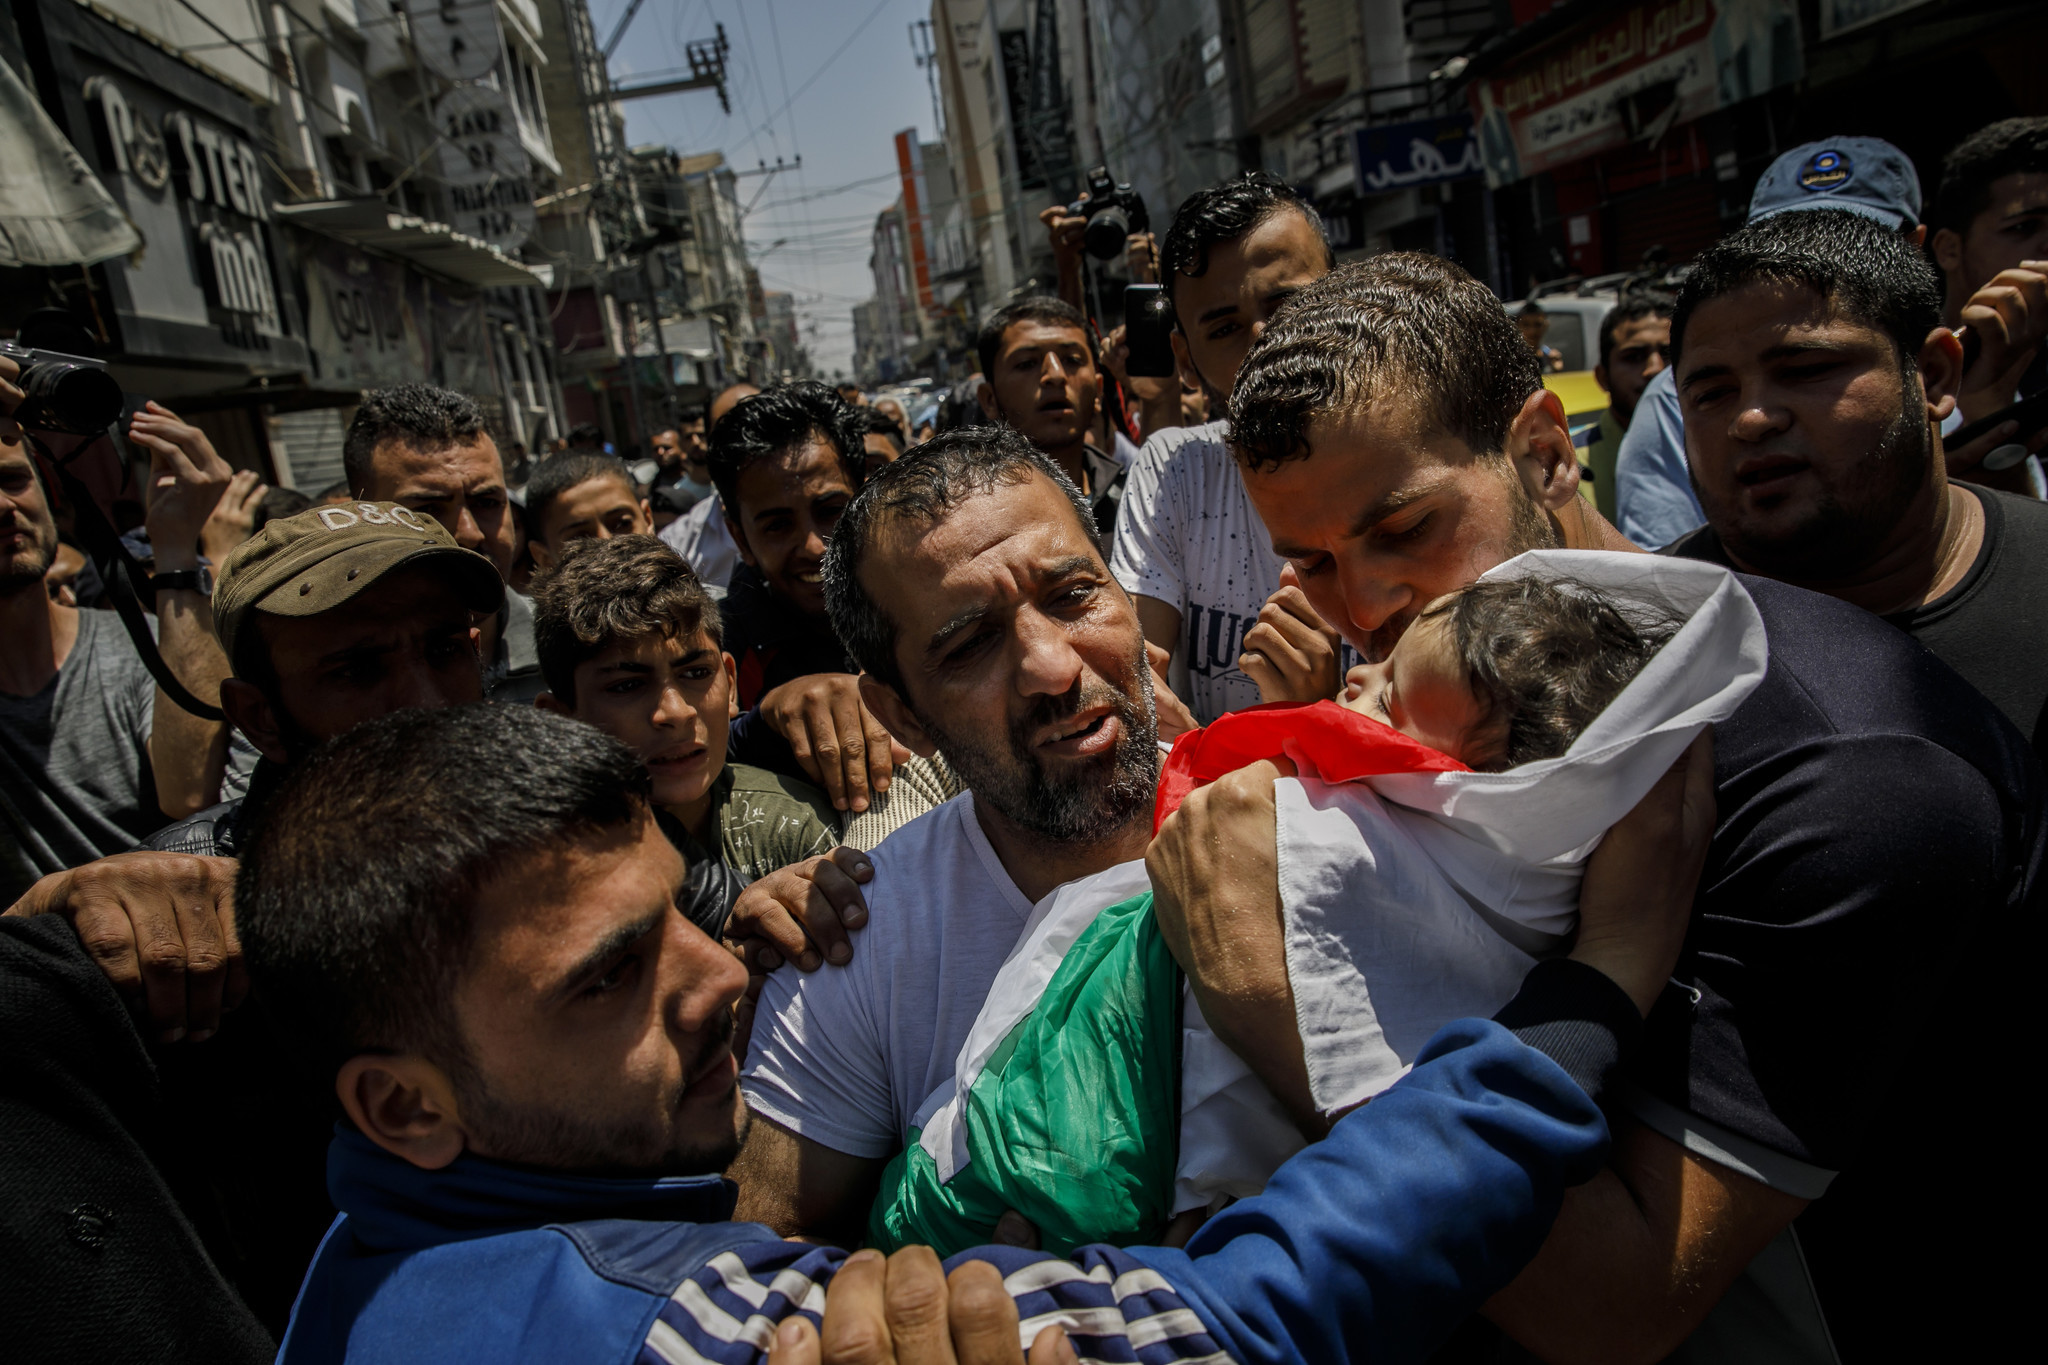 GAZA CITY, GAZA — TUESDAY, MAY 15, 2018: Family members and relatives carry the body of a dead chil